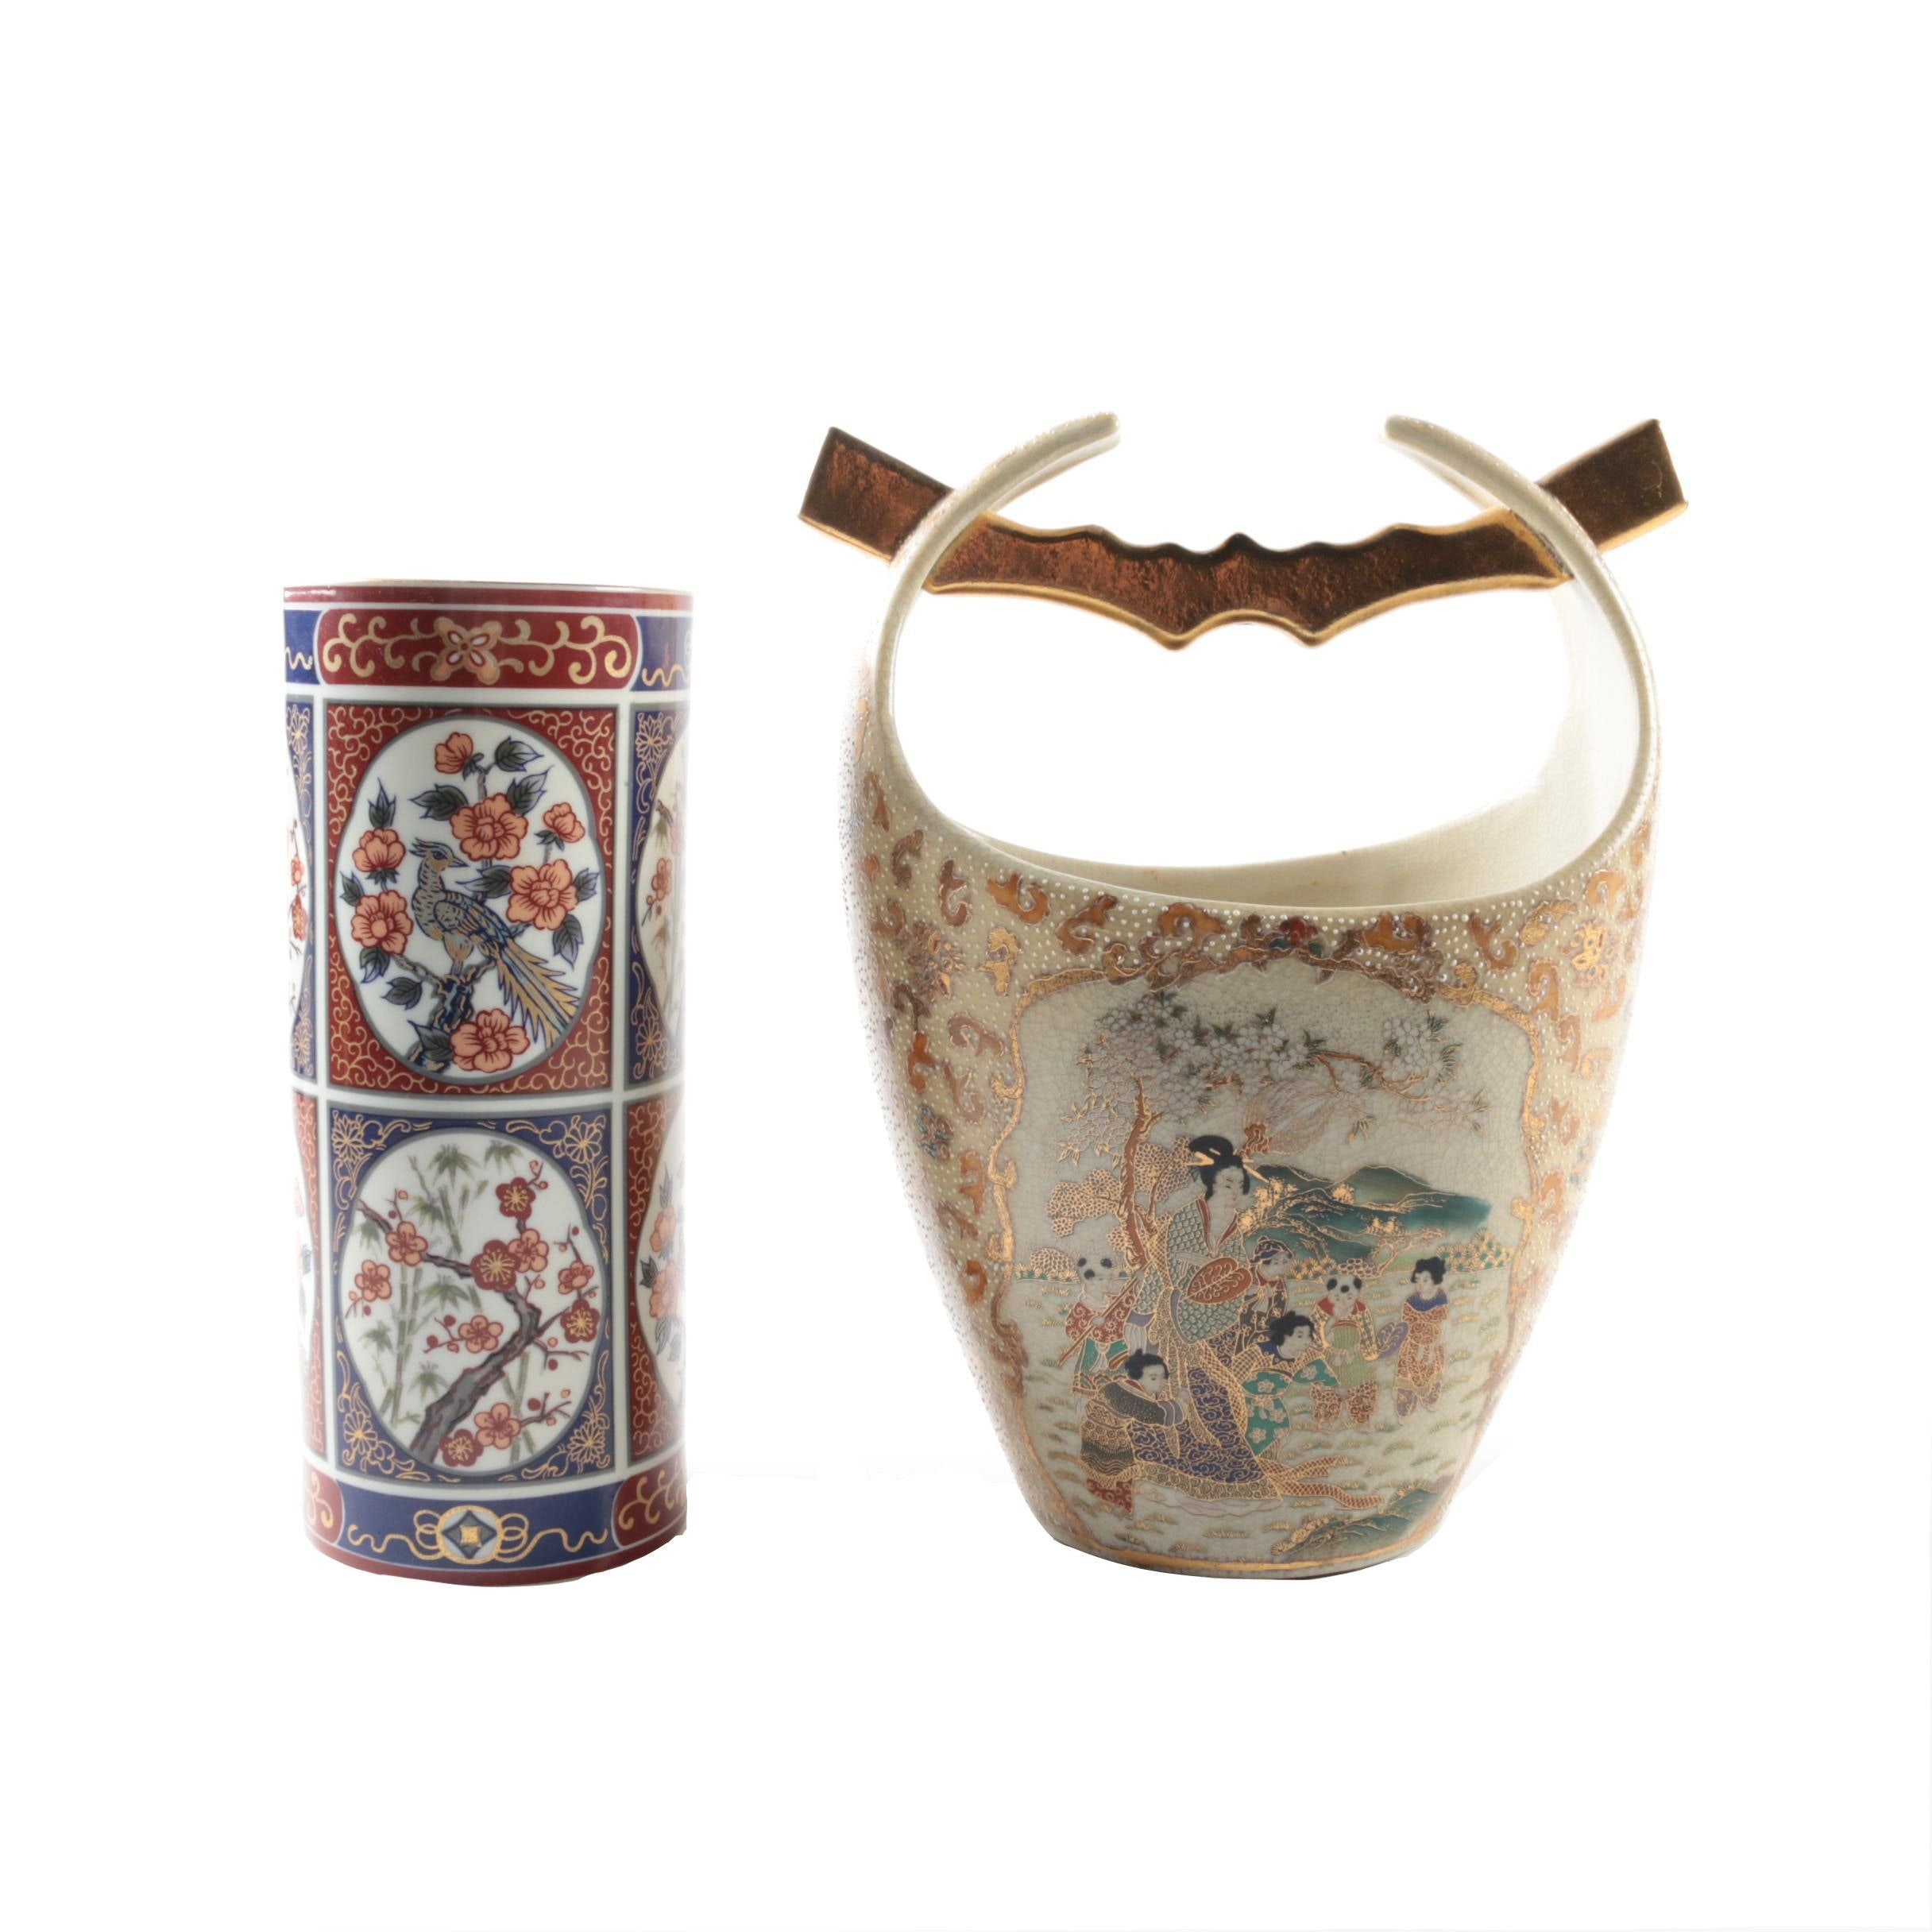 Japanese Imari Vase and Chinese Satsuma Style Ceramic Bucket